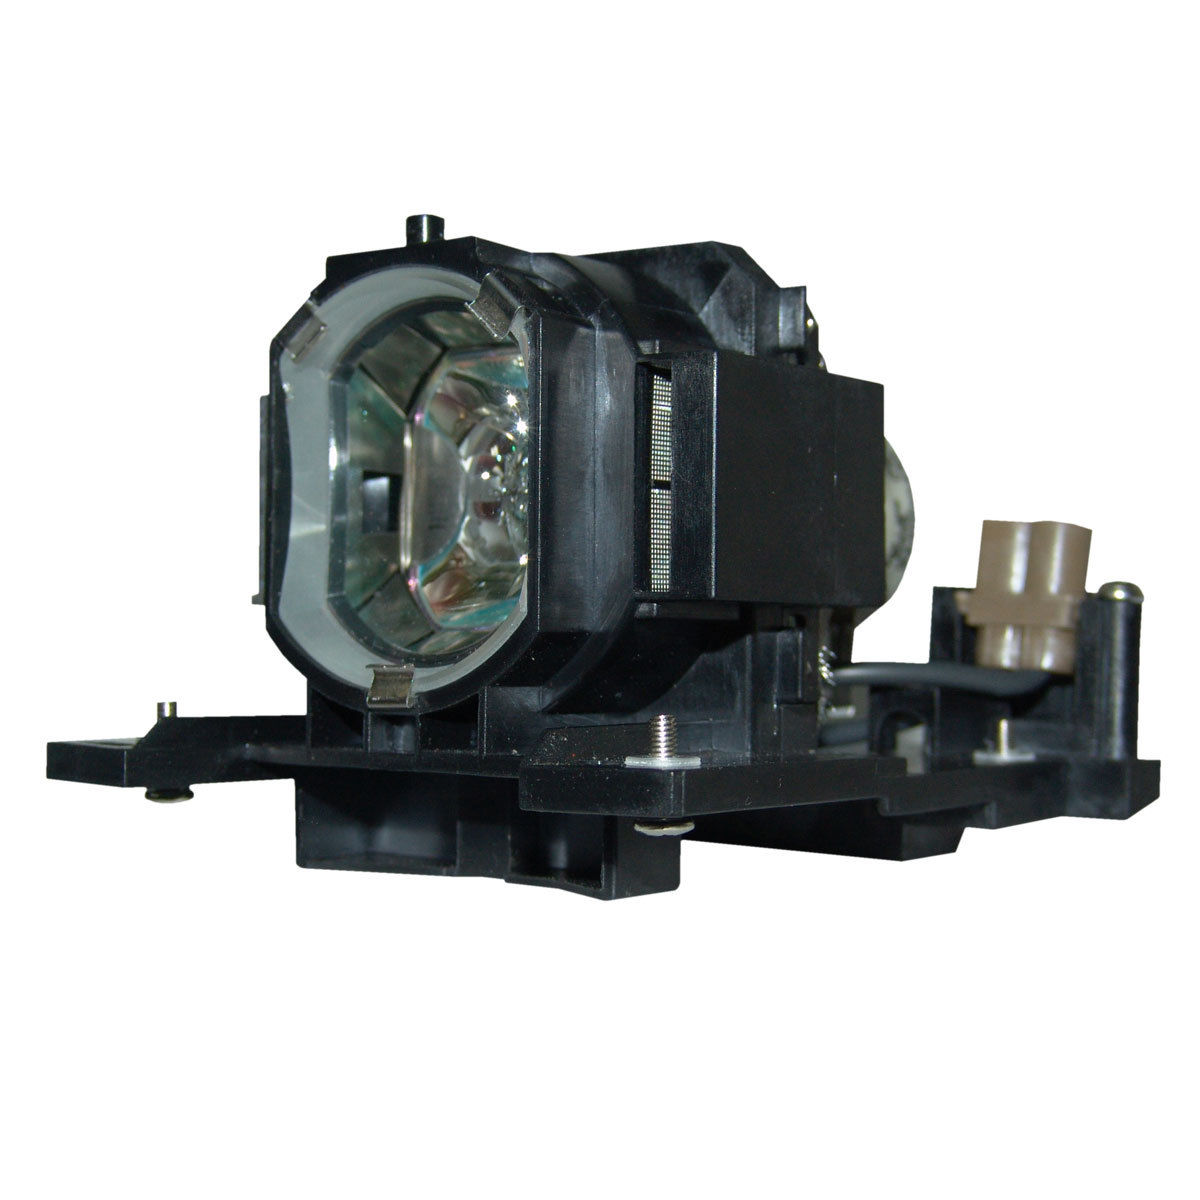 Projector Lamp Bulb DT01025 DT-01025 for HITACHI CP-X2510N Projector Bulb Lamp with housing dt01021 projector lamp bulb for hitachi cp x3010 cp x3010n cp x3010z cp x3011 cp x3011n